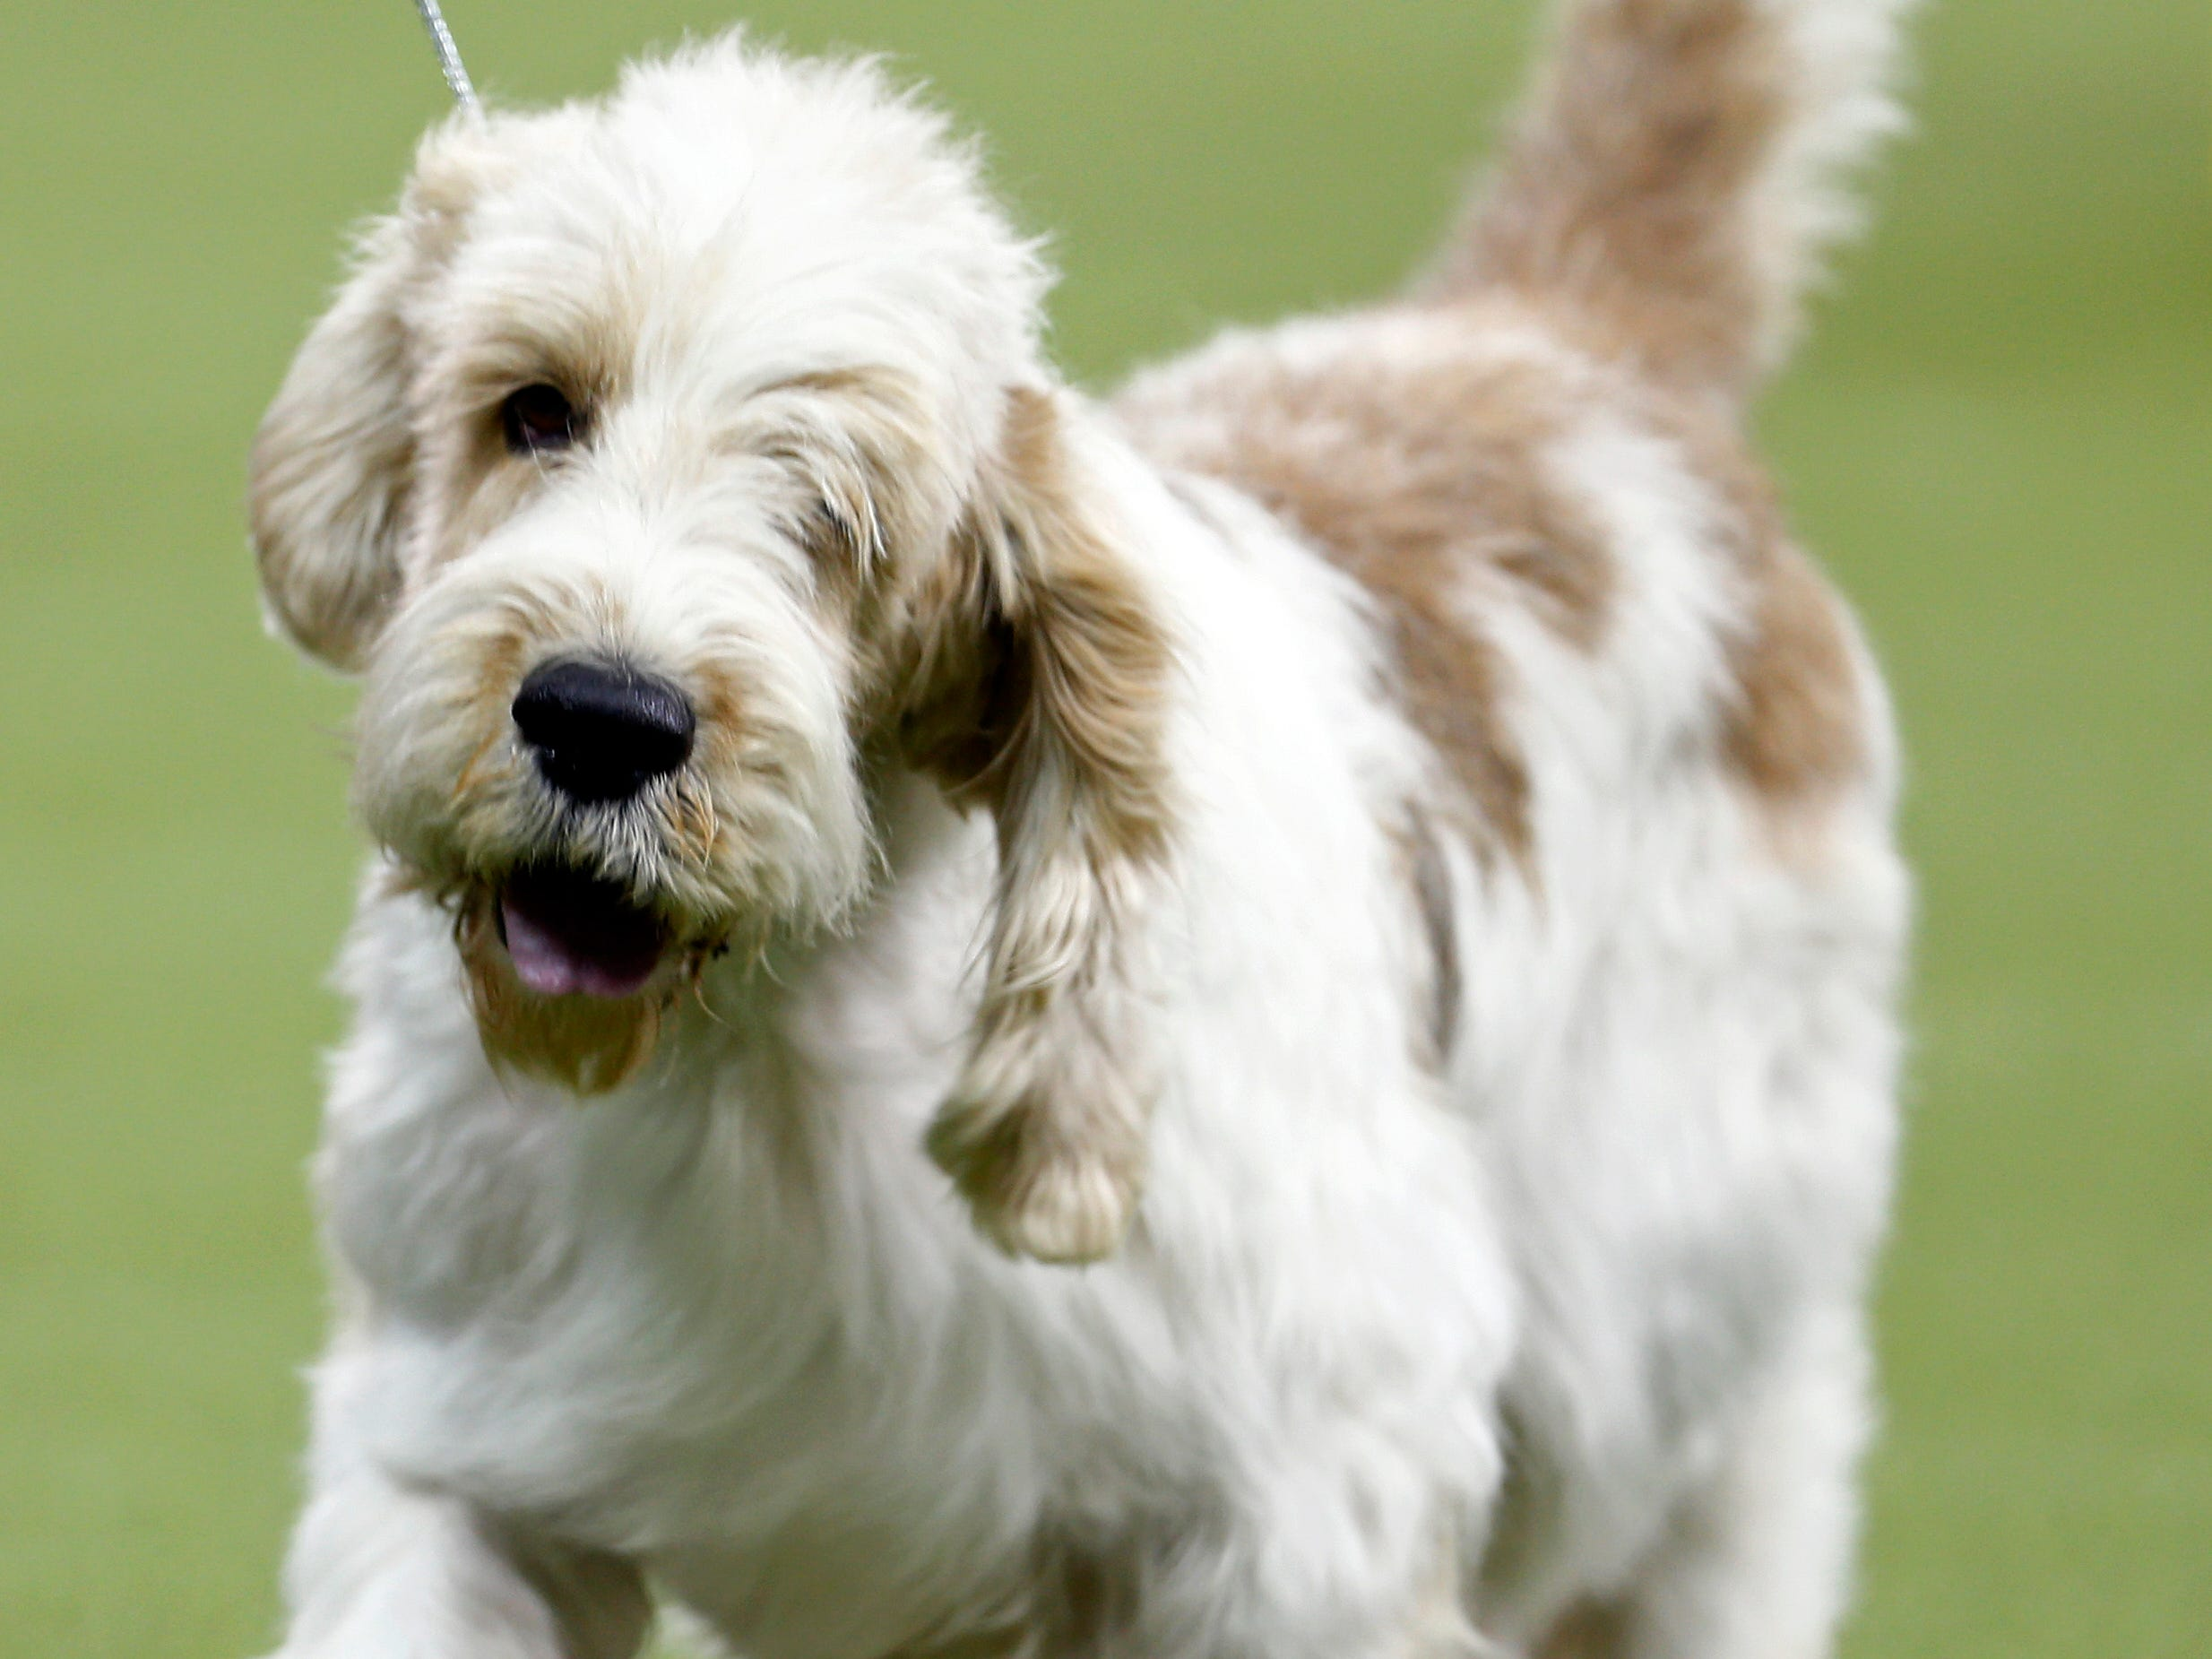 A Grand Basset Griffon Vendeen, new this year to the show, is seen during breed judging at the 143rd Annual Westminster Kennel Club All Breed Dog Show at Madison Square Garden.